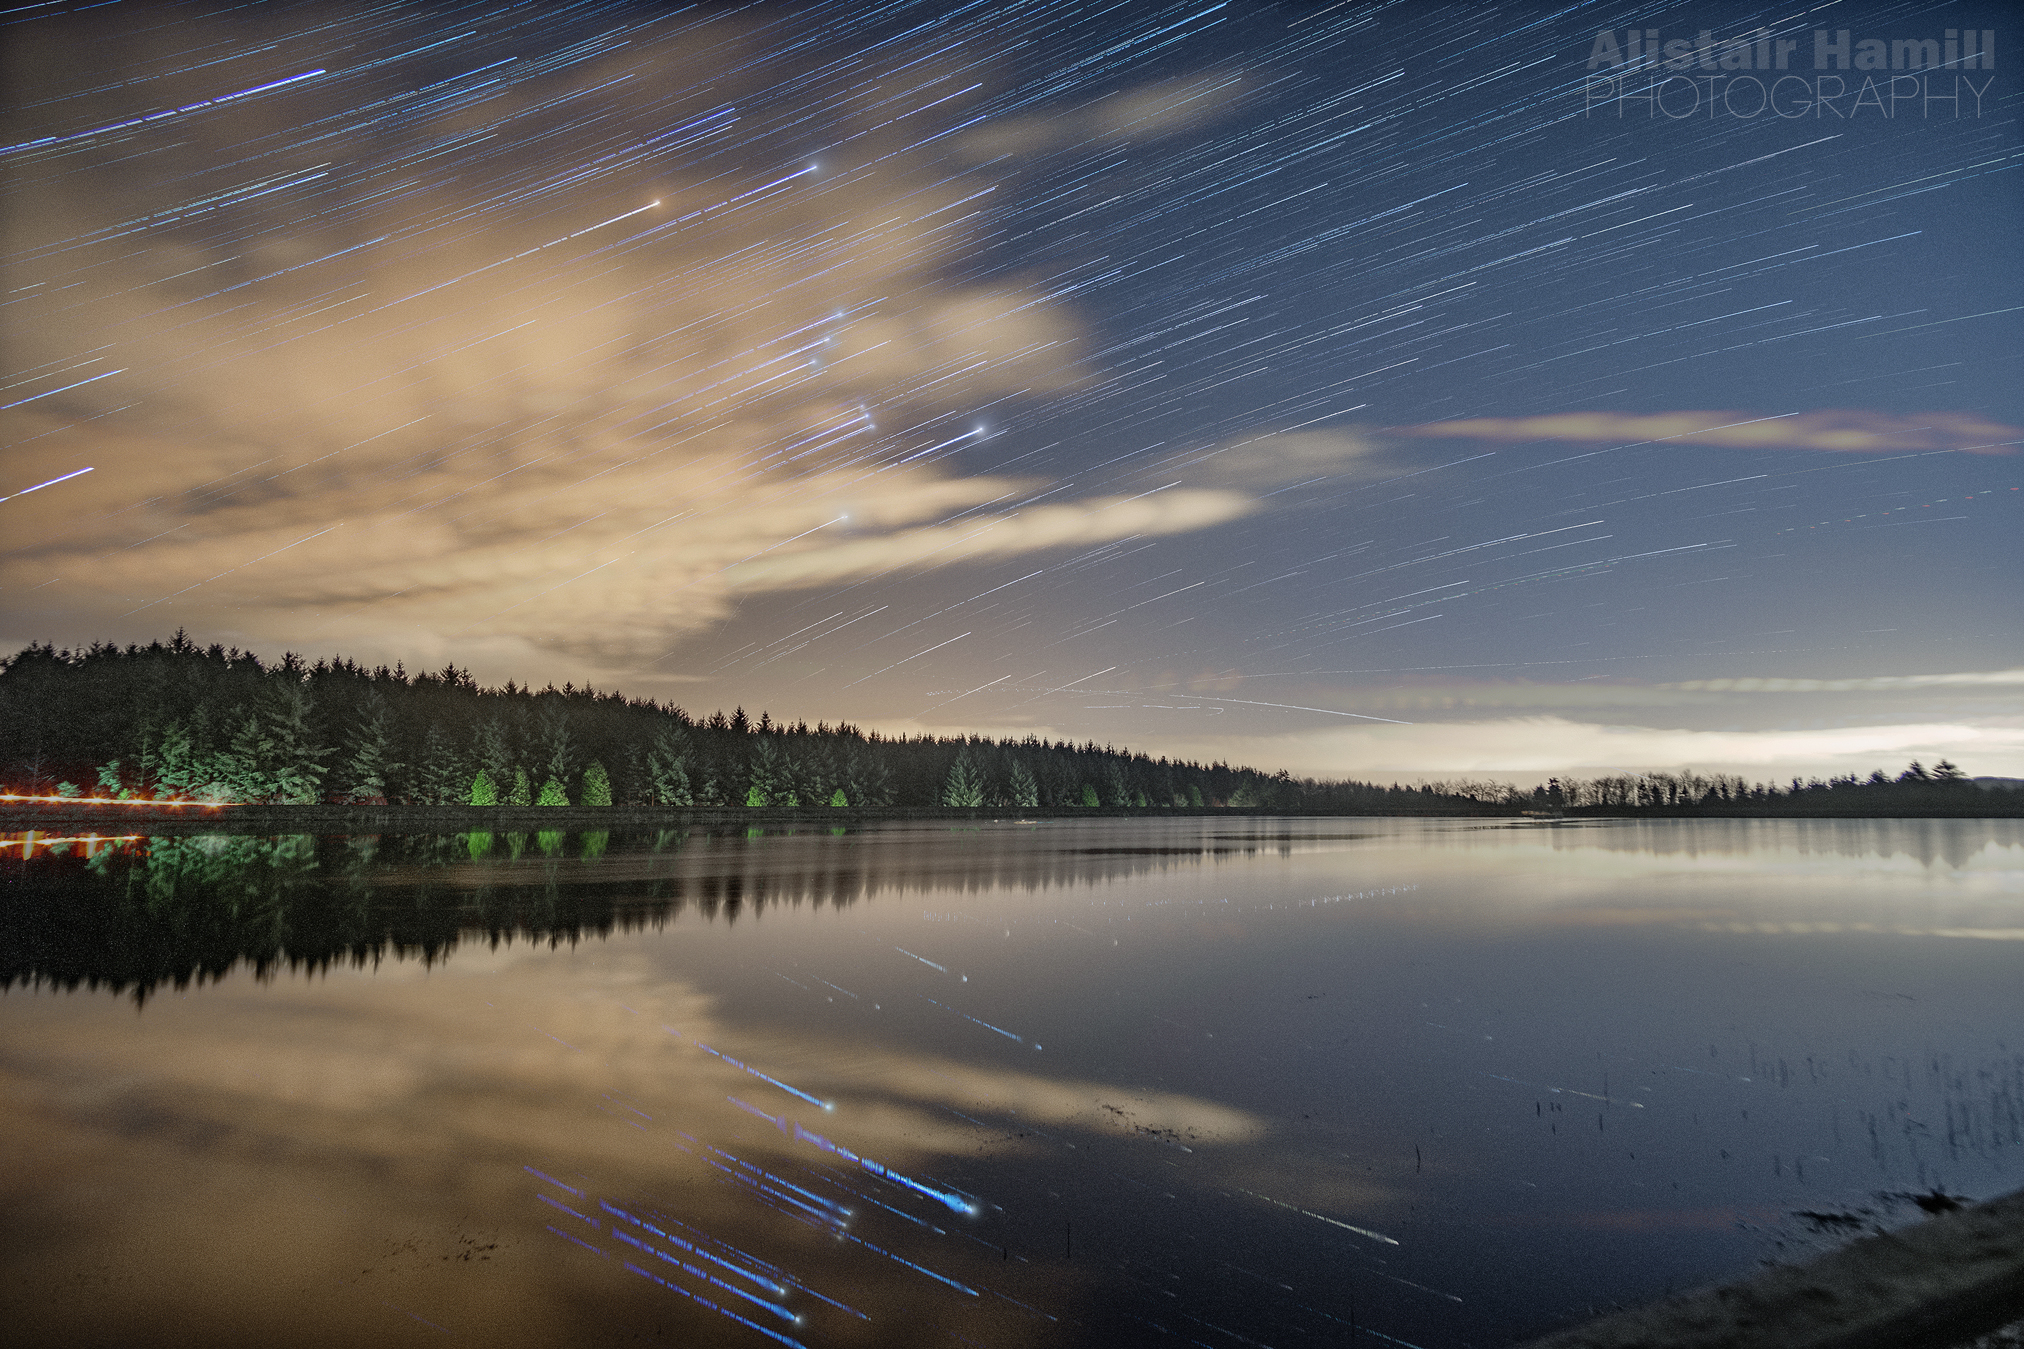 Orion star trails